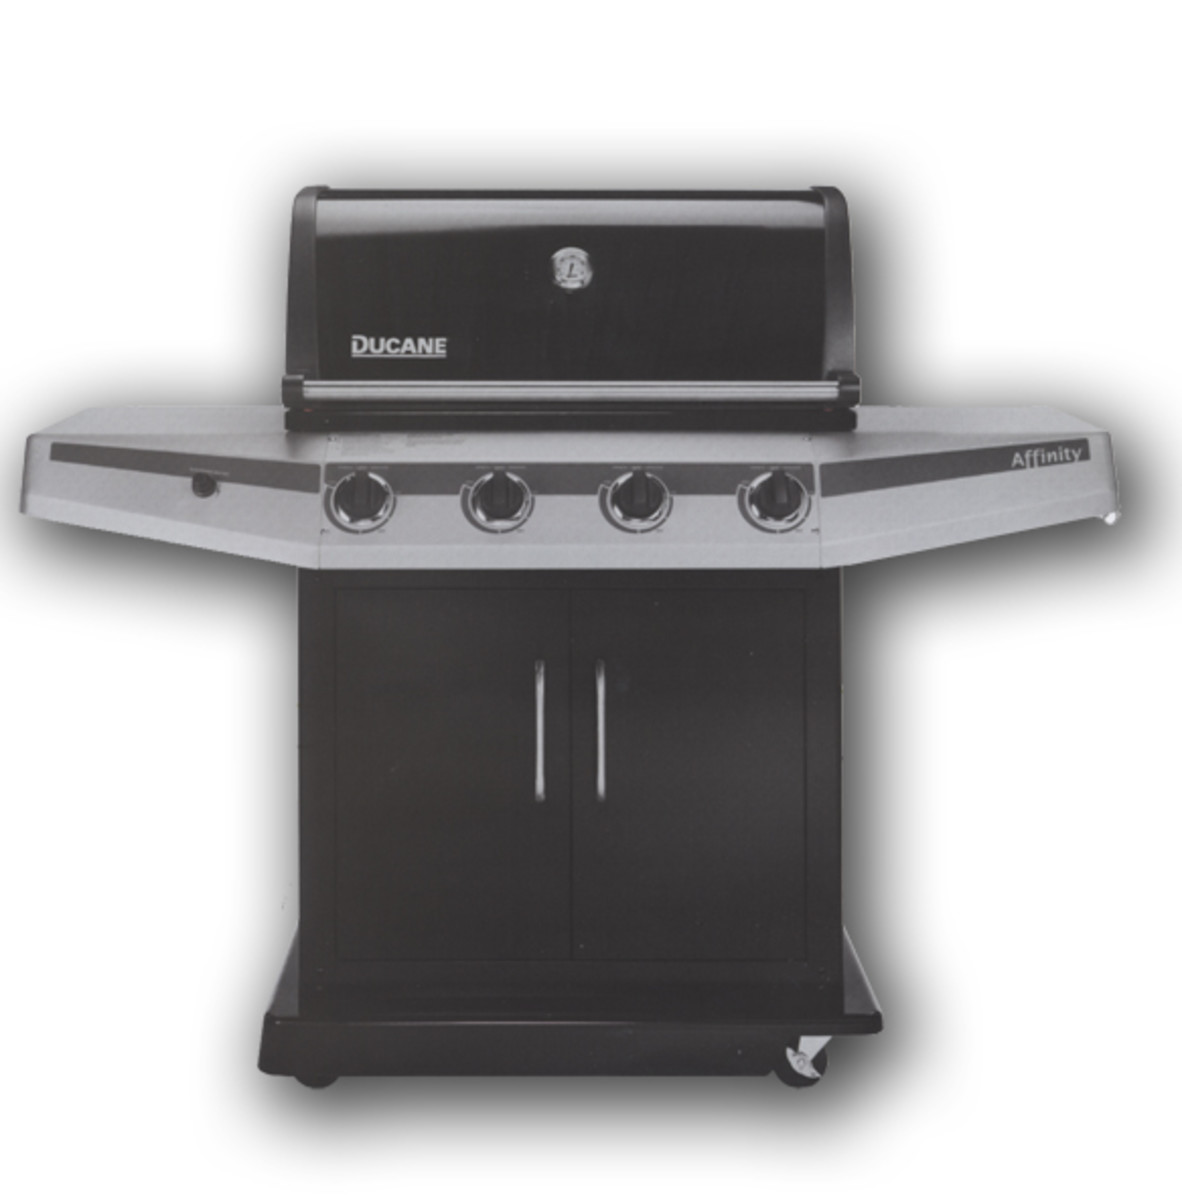 Ducane Affinity 4100 boasts 48,000 BTU and 693 square inches grilling surface.  Stainless steel is replaced by porcelain and plastic.